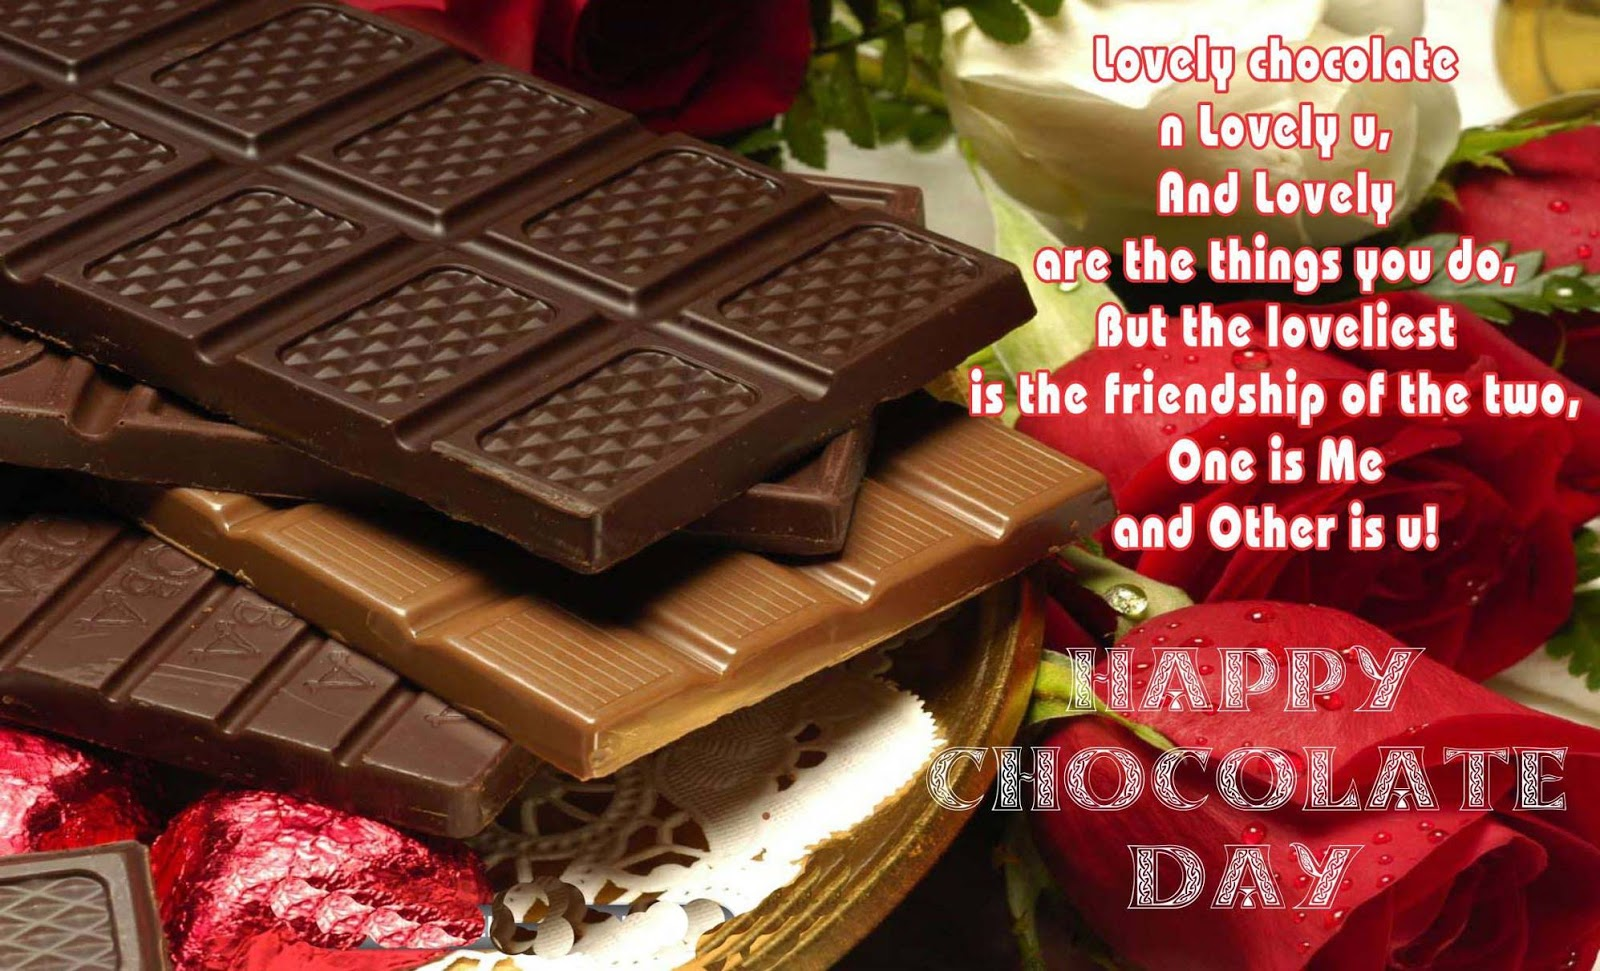 Chocolate Day 2017 Image For Fiance & Friends